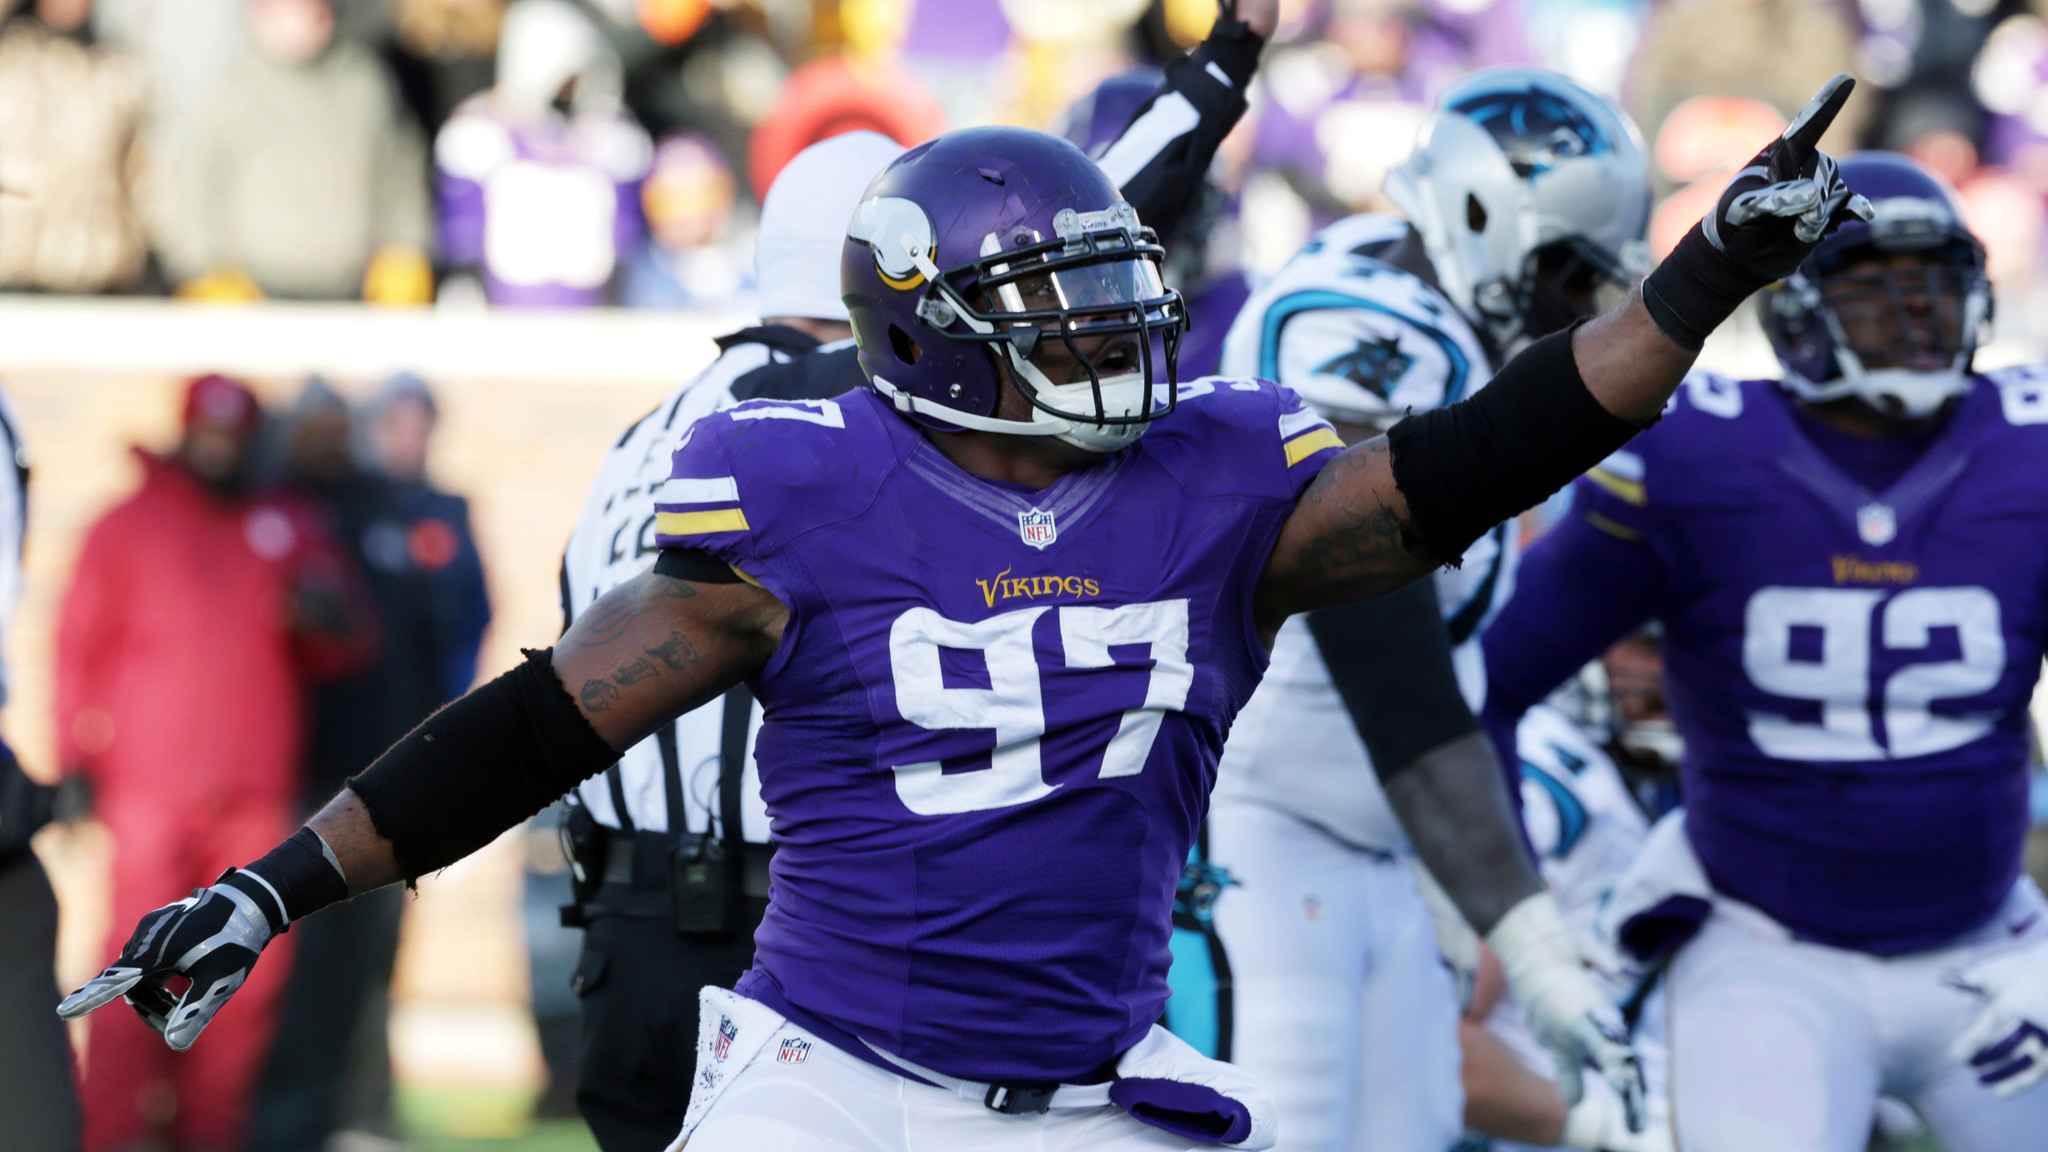 USC in the NFL Everson Griffen scores for Minnesota Vikings LA